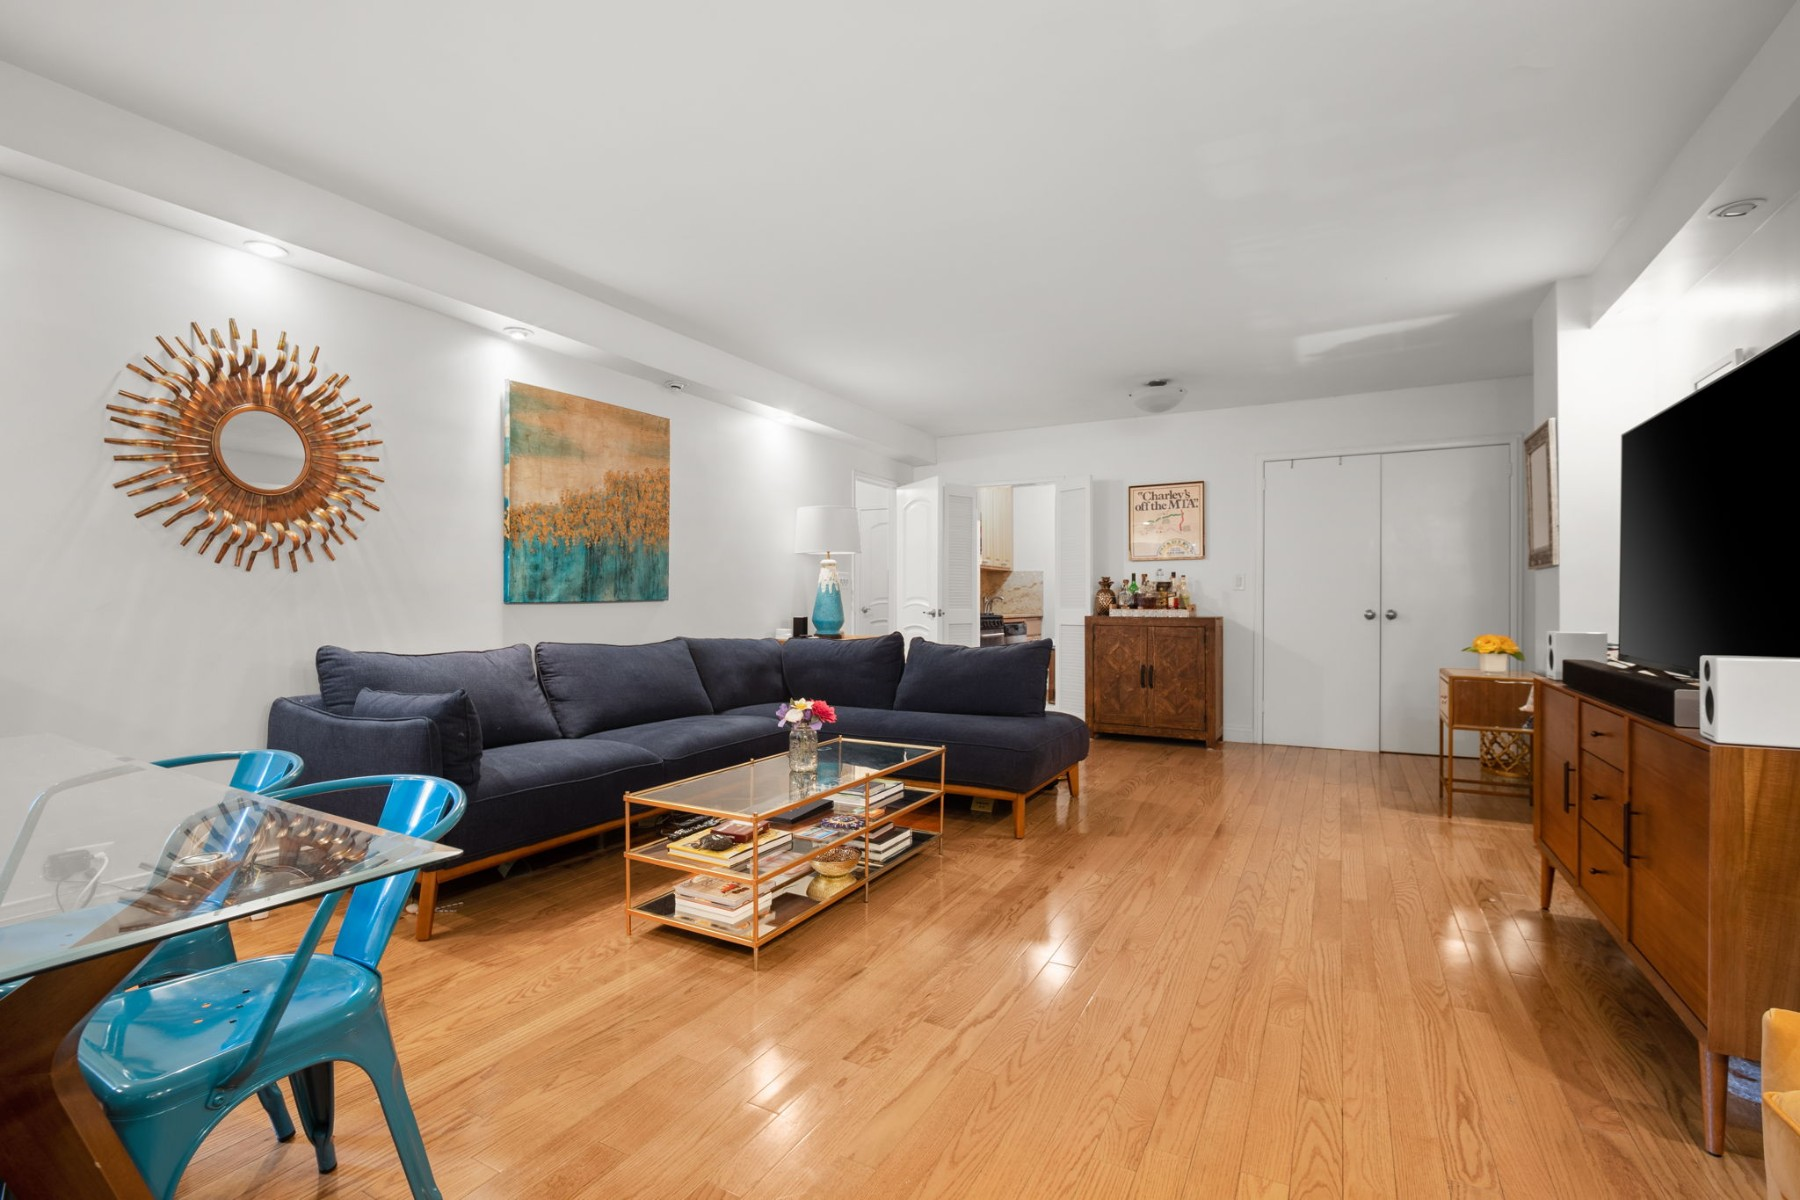 411 East 53rd Street Sutton Place New York NY 10022